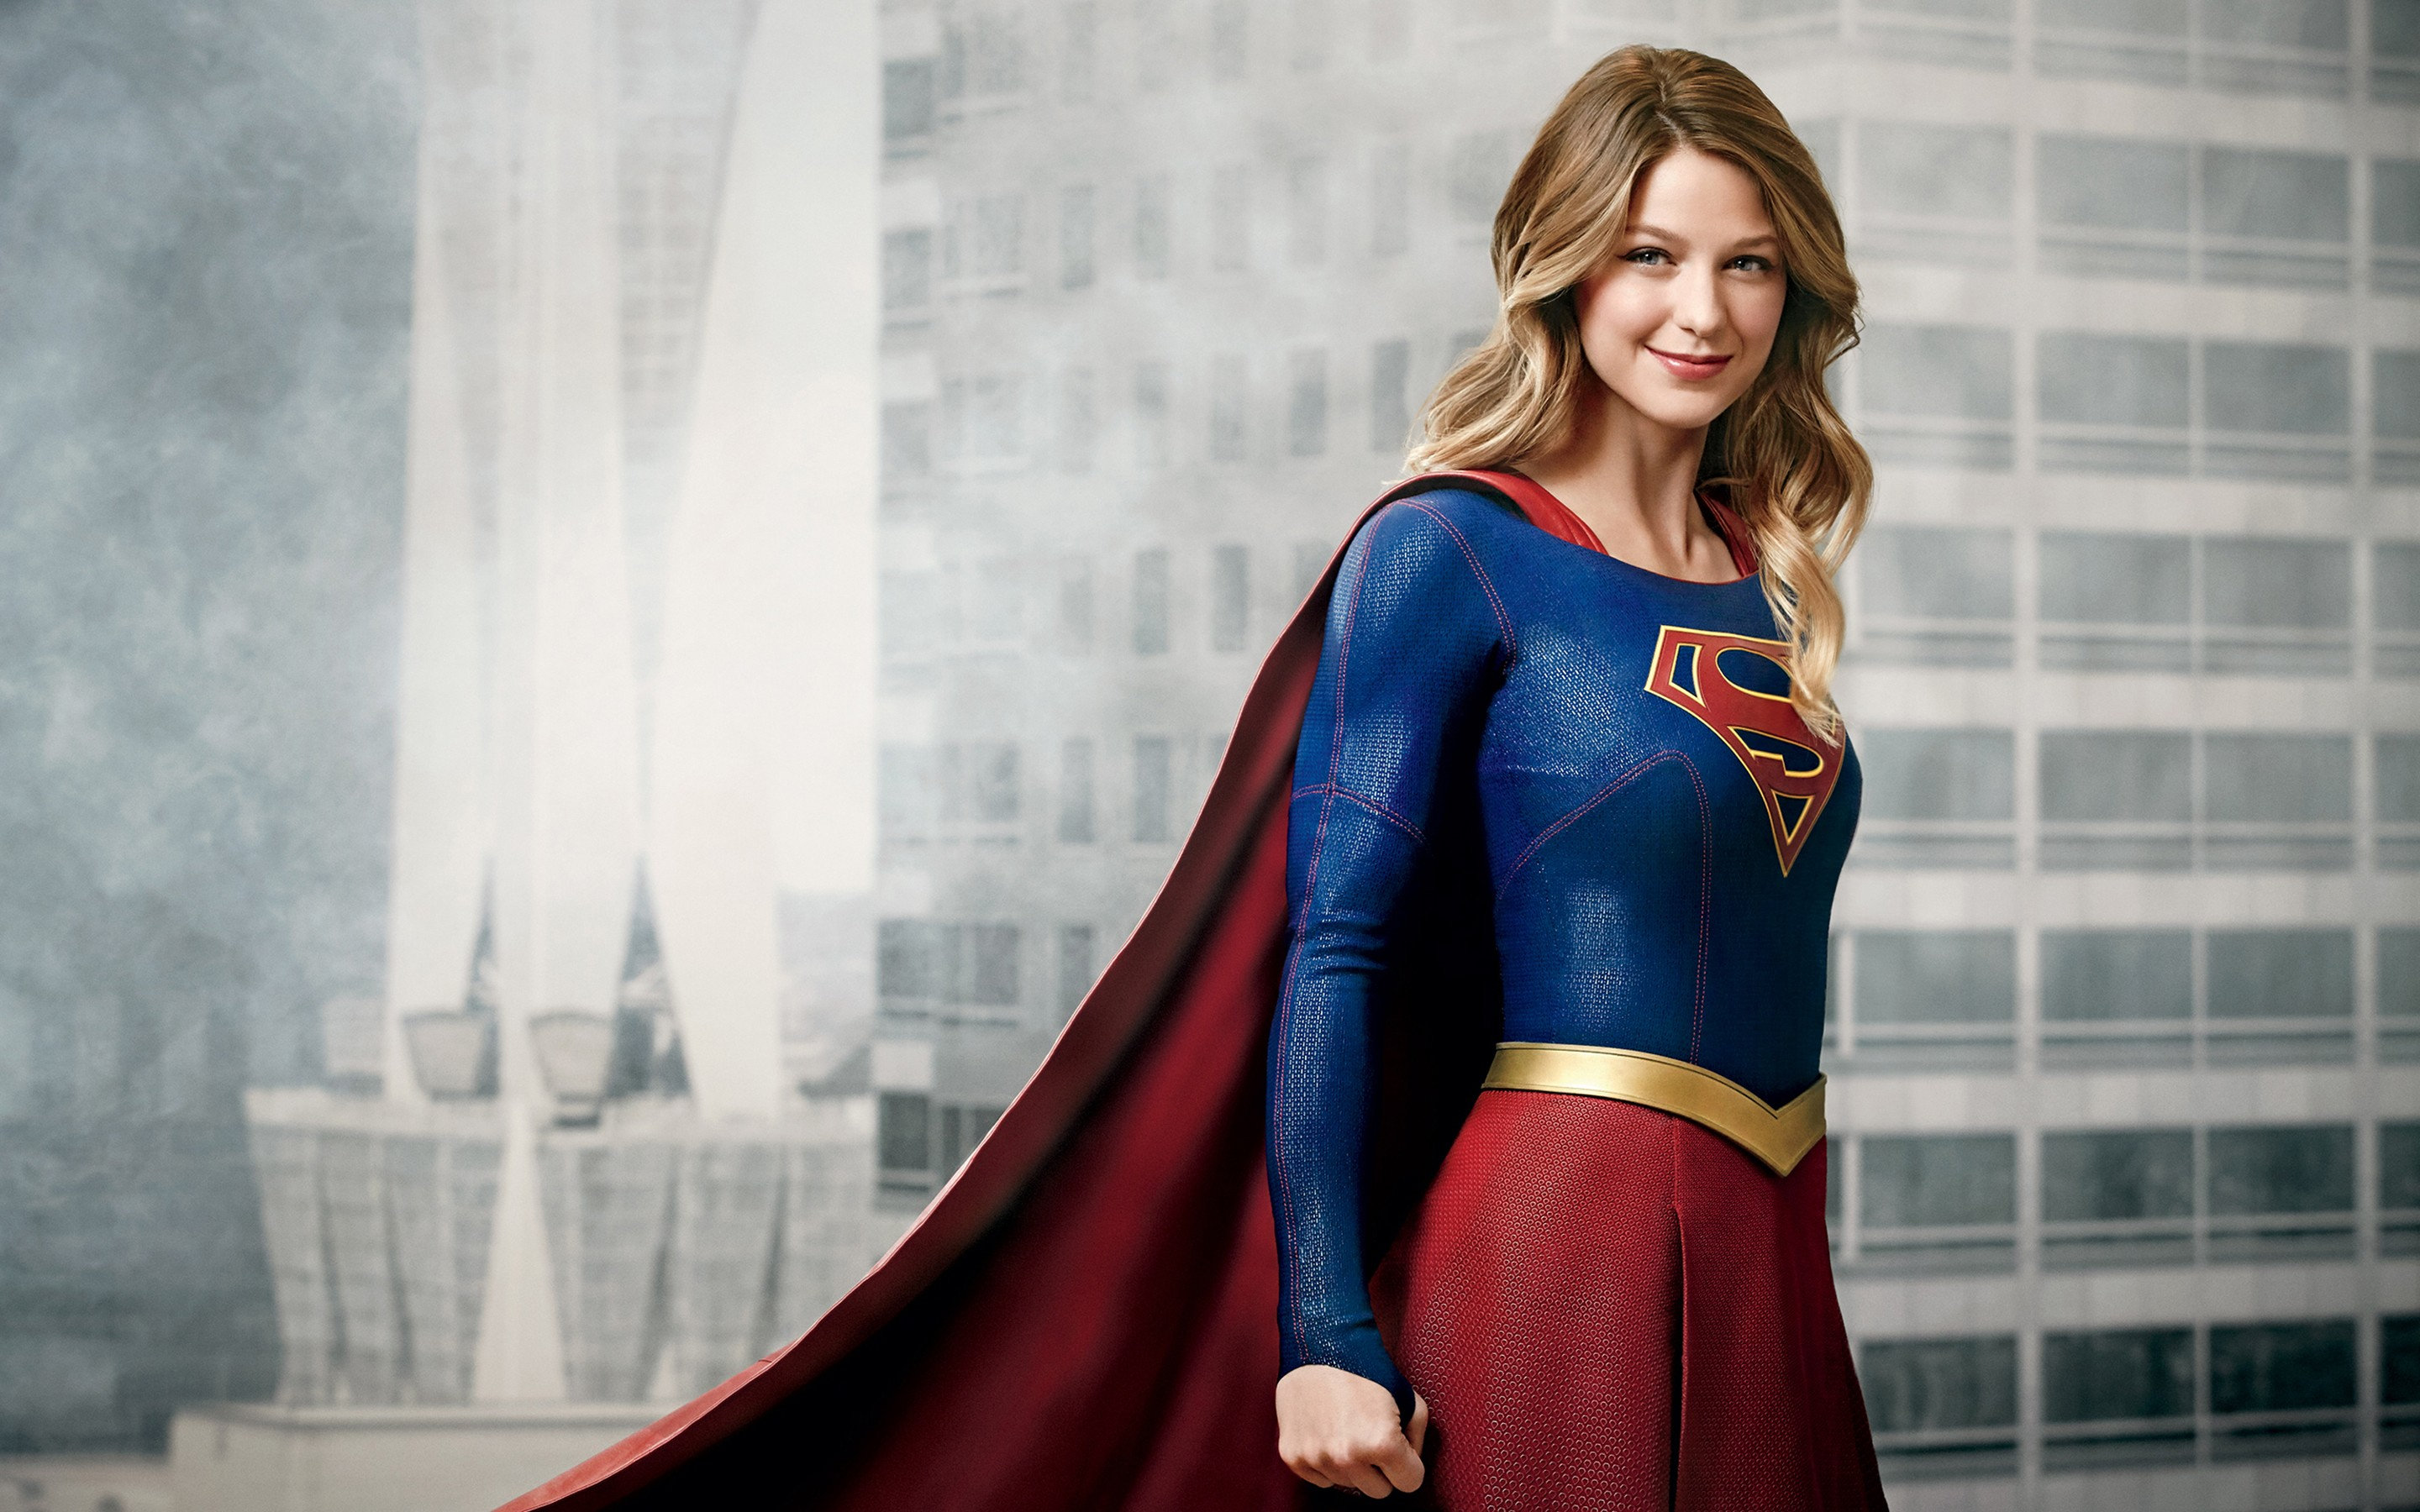 2048x1152 Melissa Benoist Supergirl 2048x1152 Resolution HD 4k ...